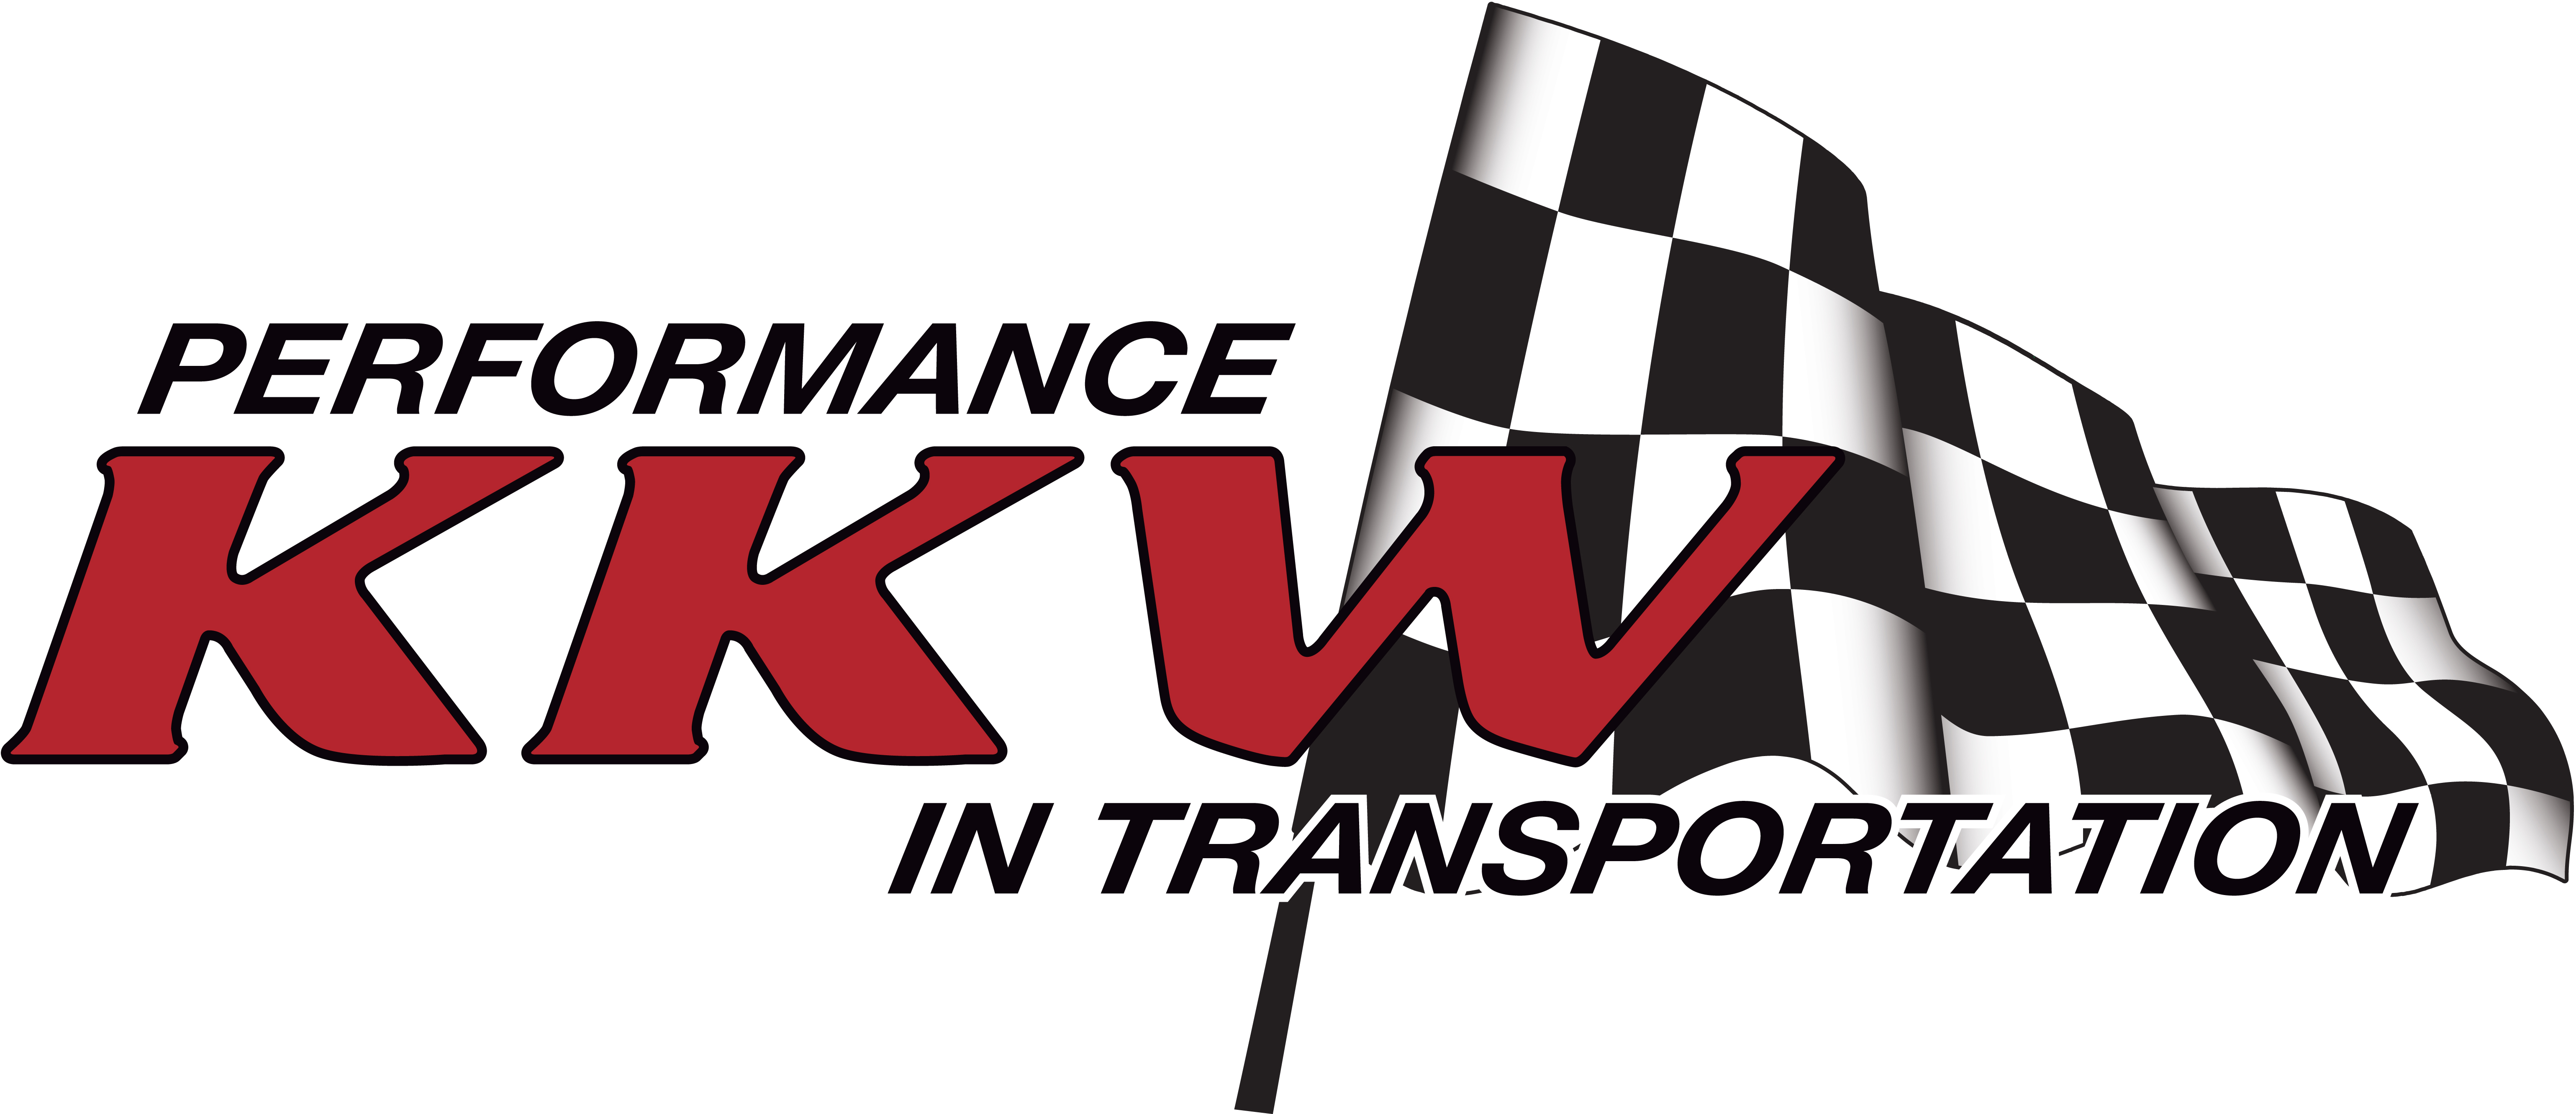 KKW Trucking | Truckers Review Jobs, Pay, Home Time, Equipment